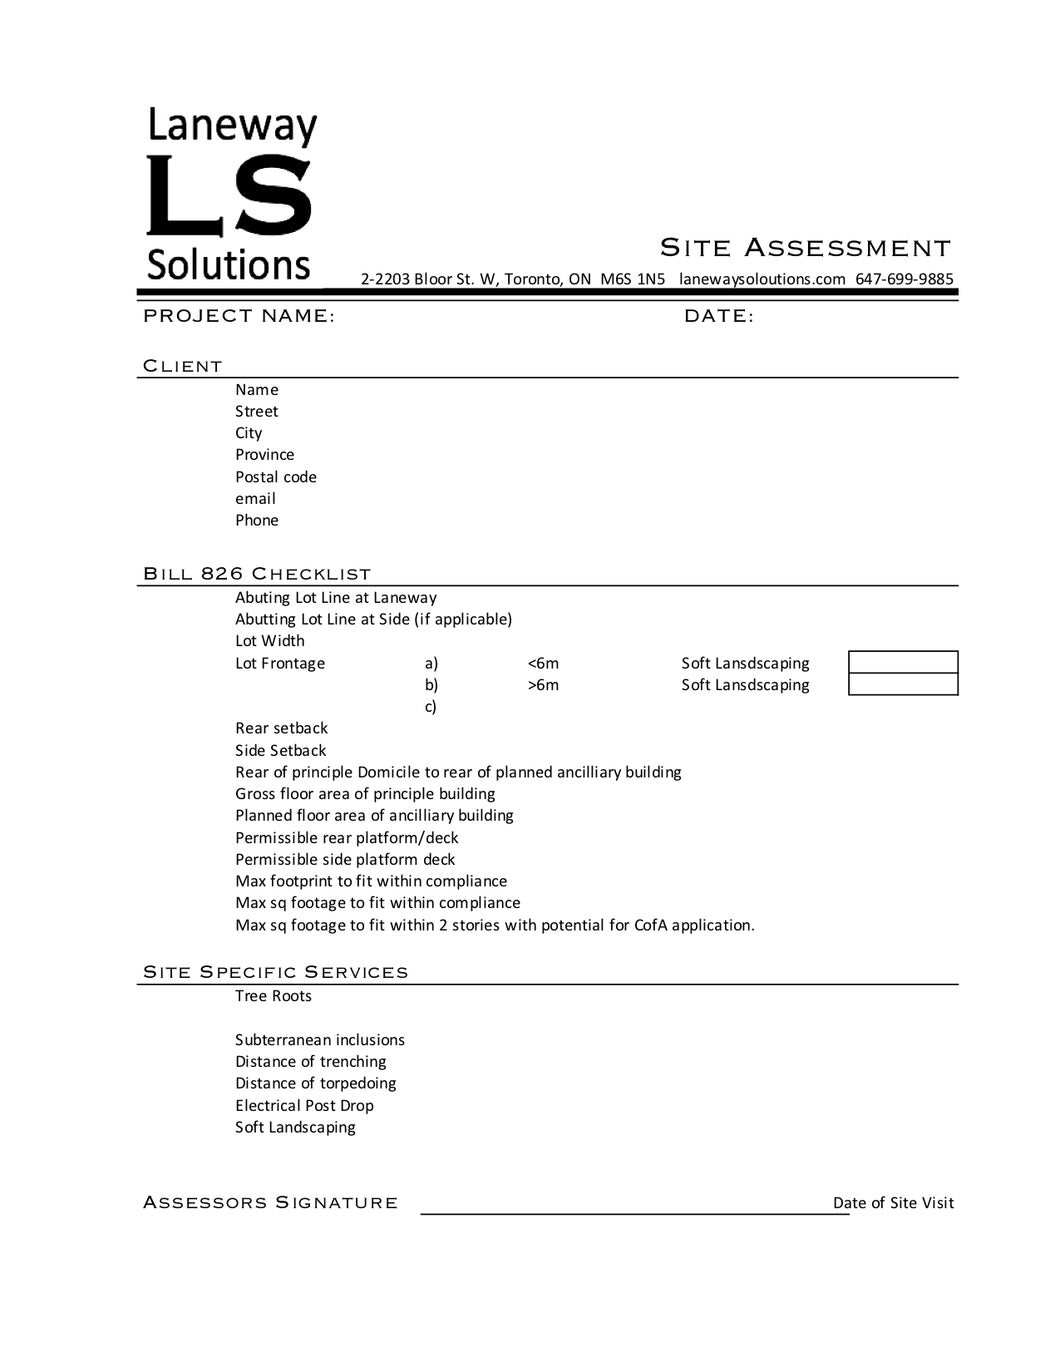 b Site Assessment, Services Estimate, and Certificate of Compliance with Bill 826